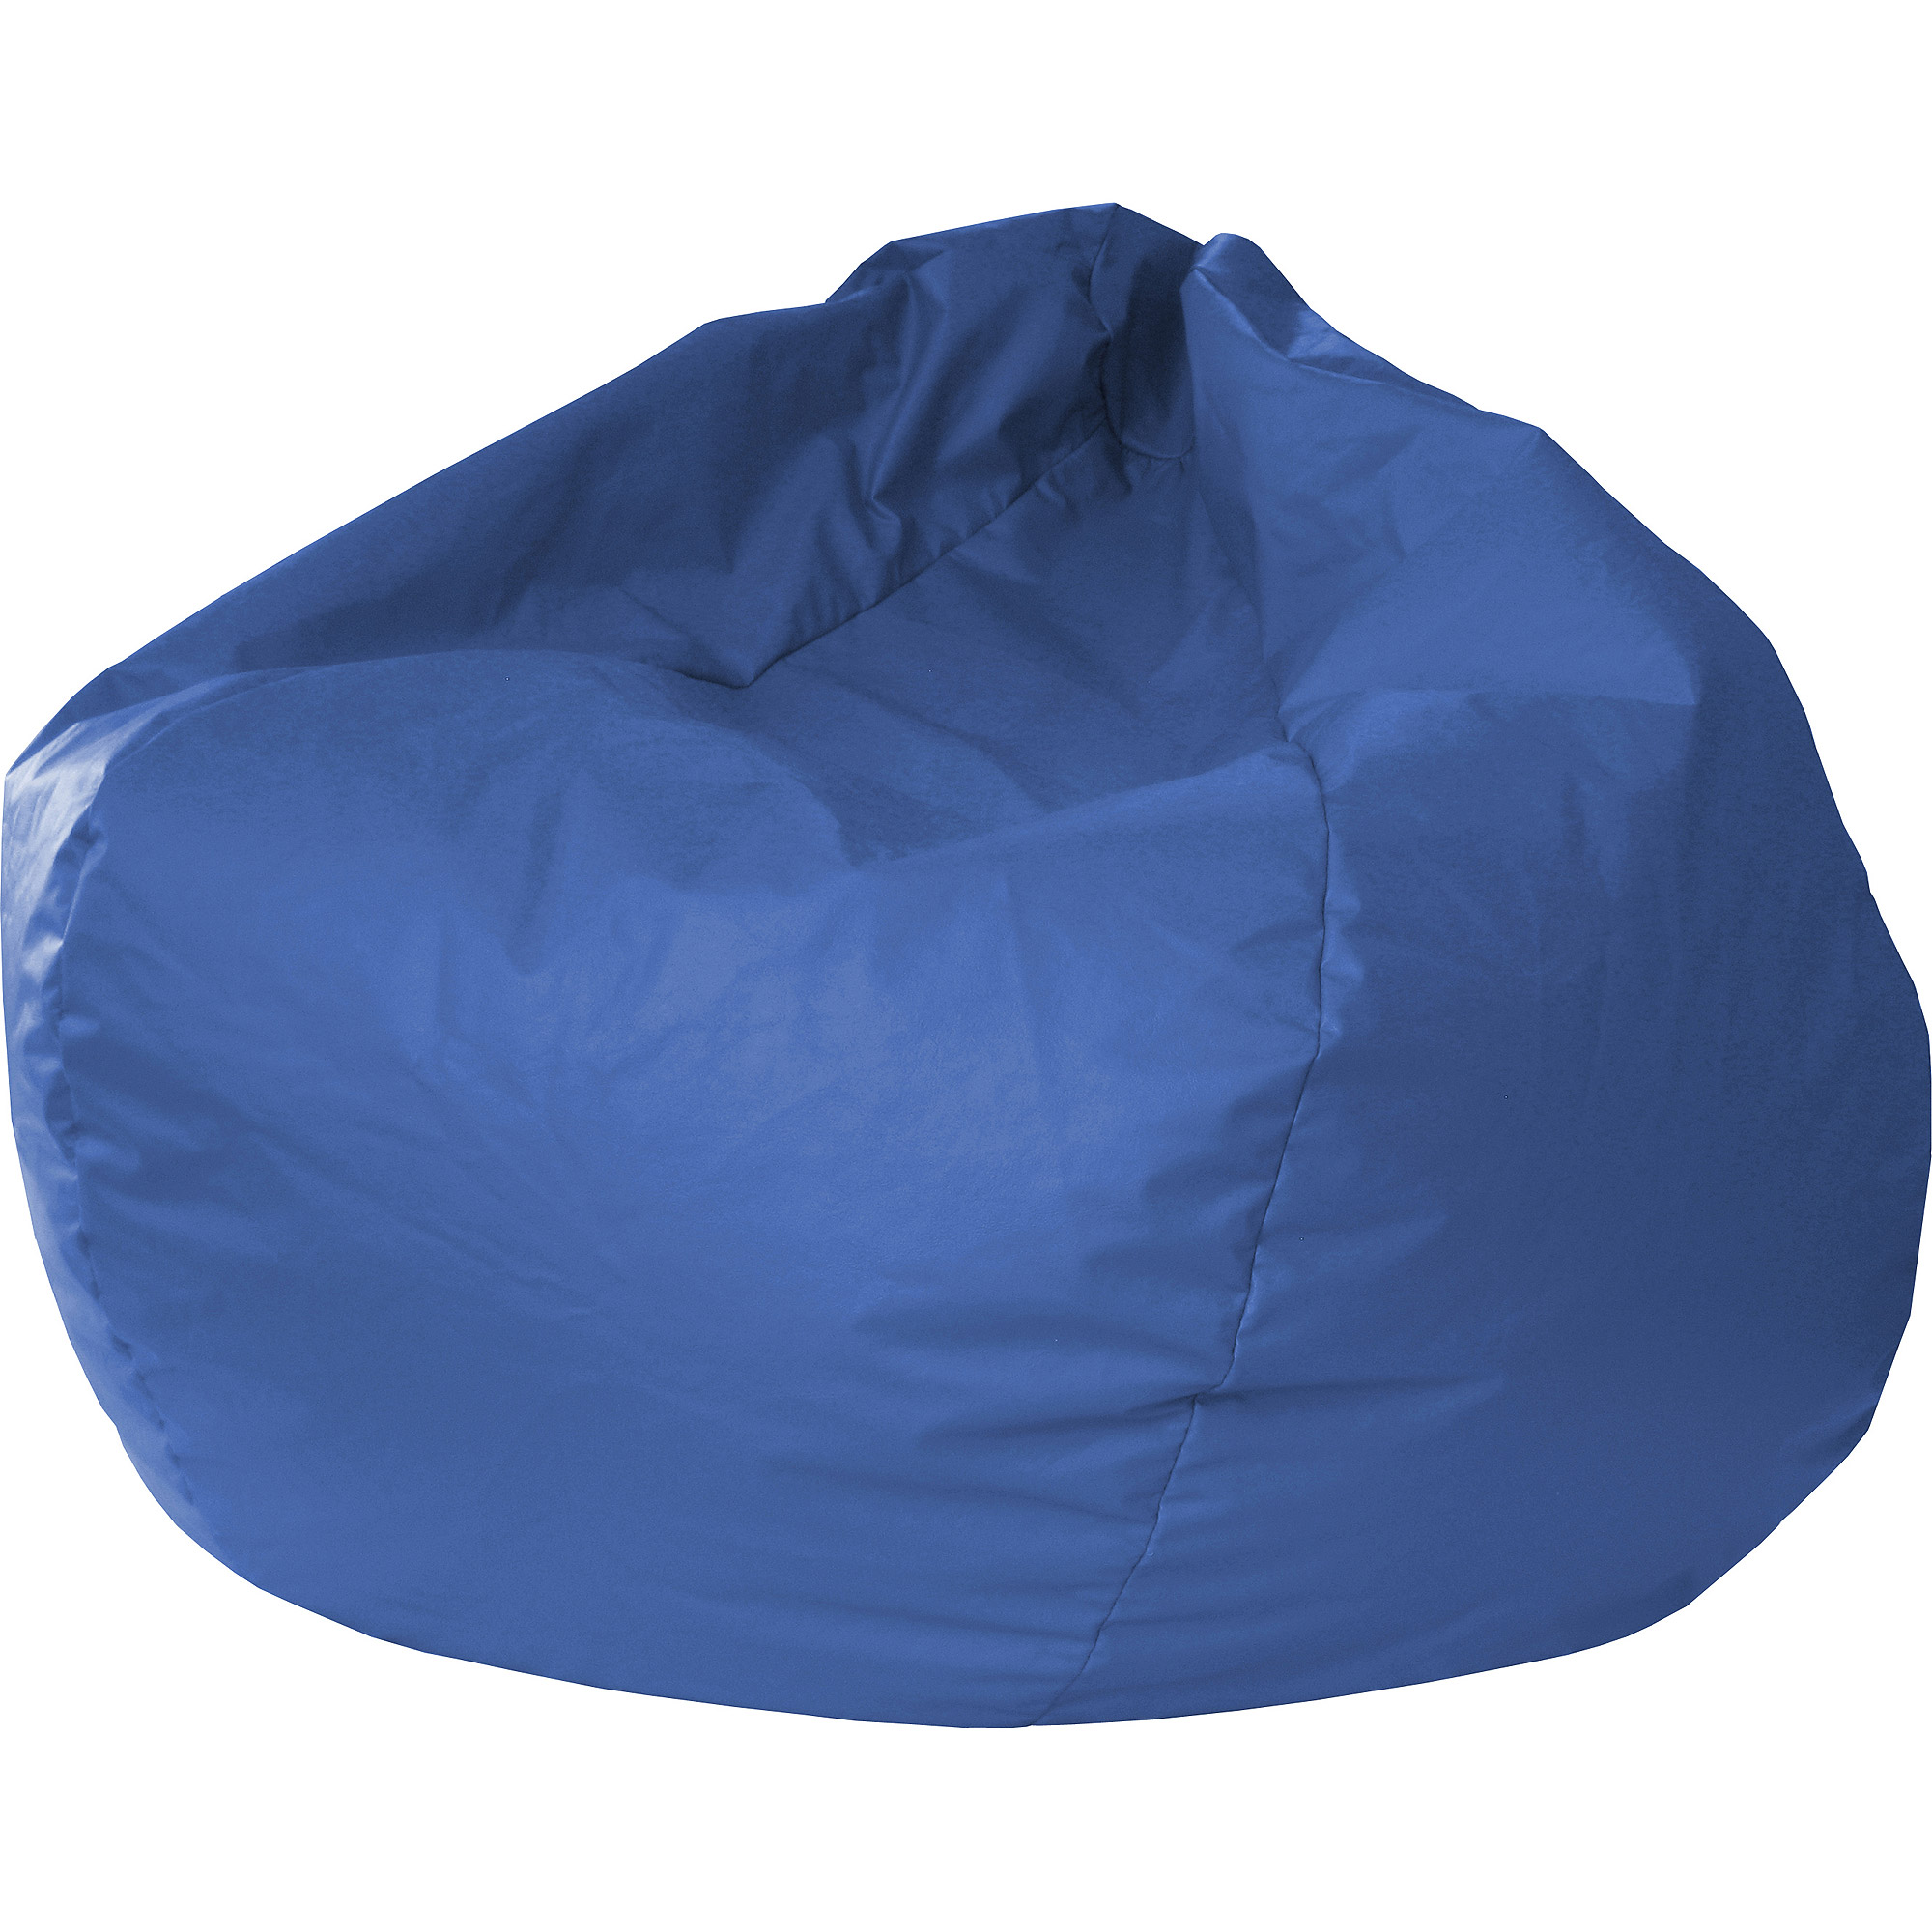 XXL Leather Look Vinyl Bean Bag Walmart